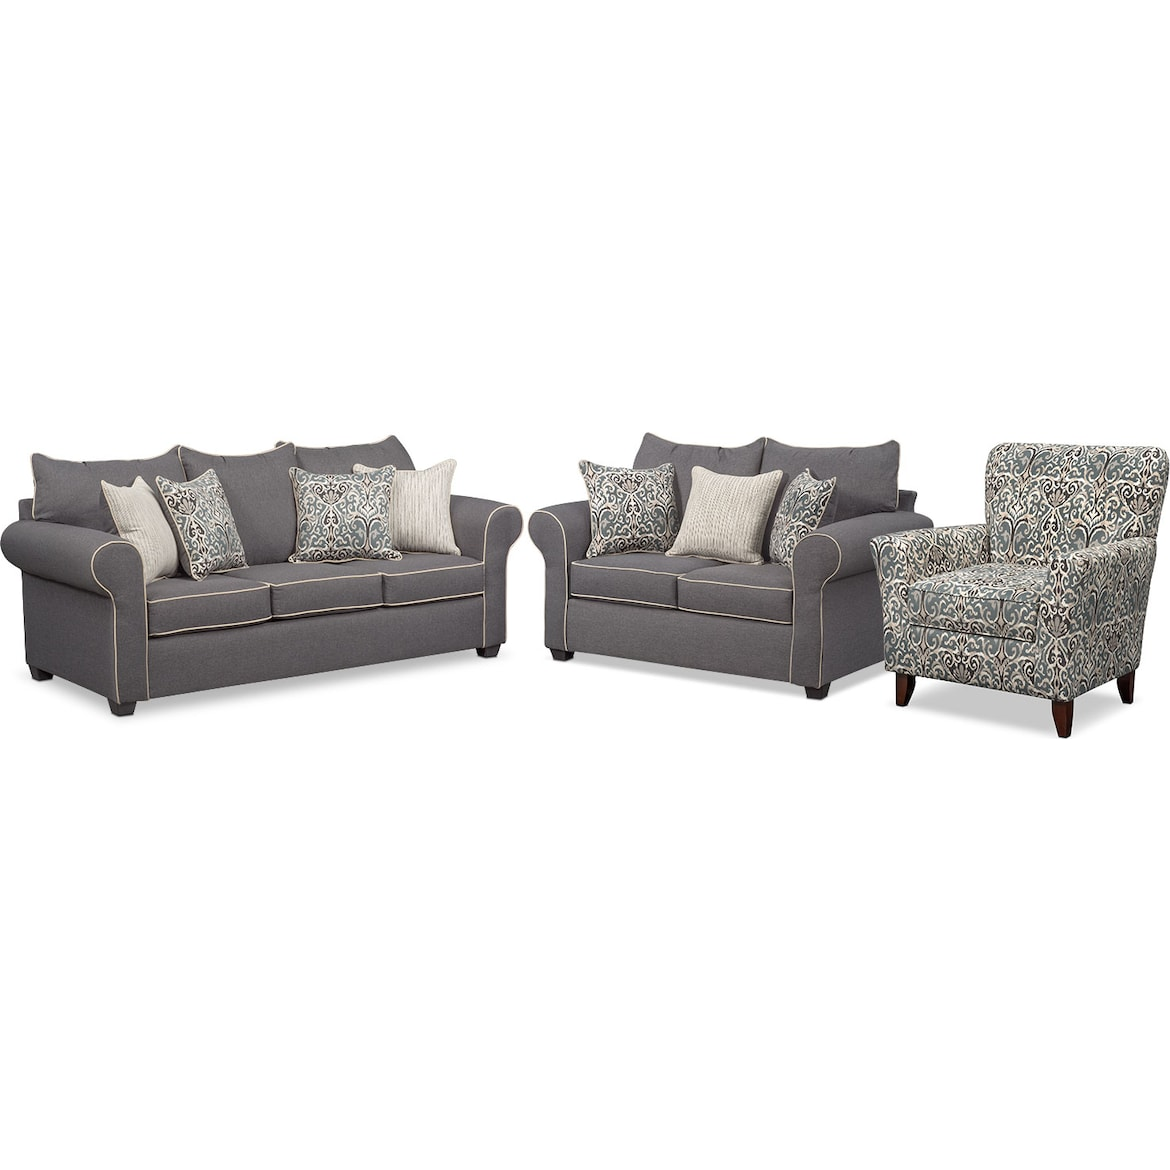 Carla Sofa Loveseat And Accent Chair Set American